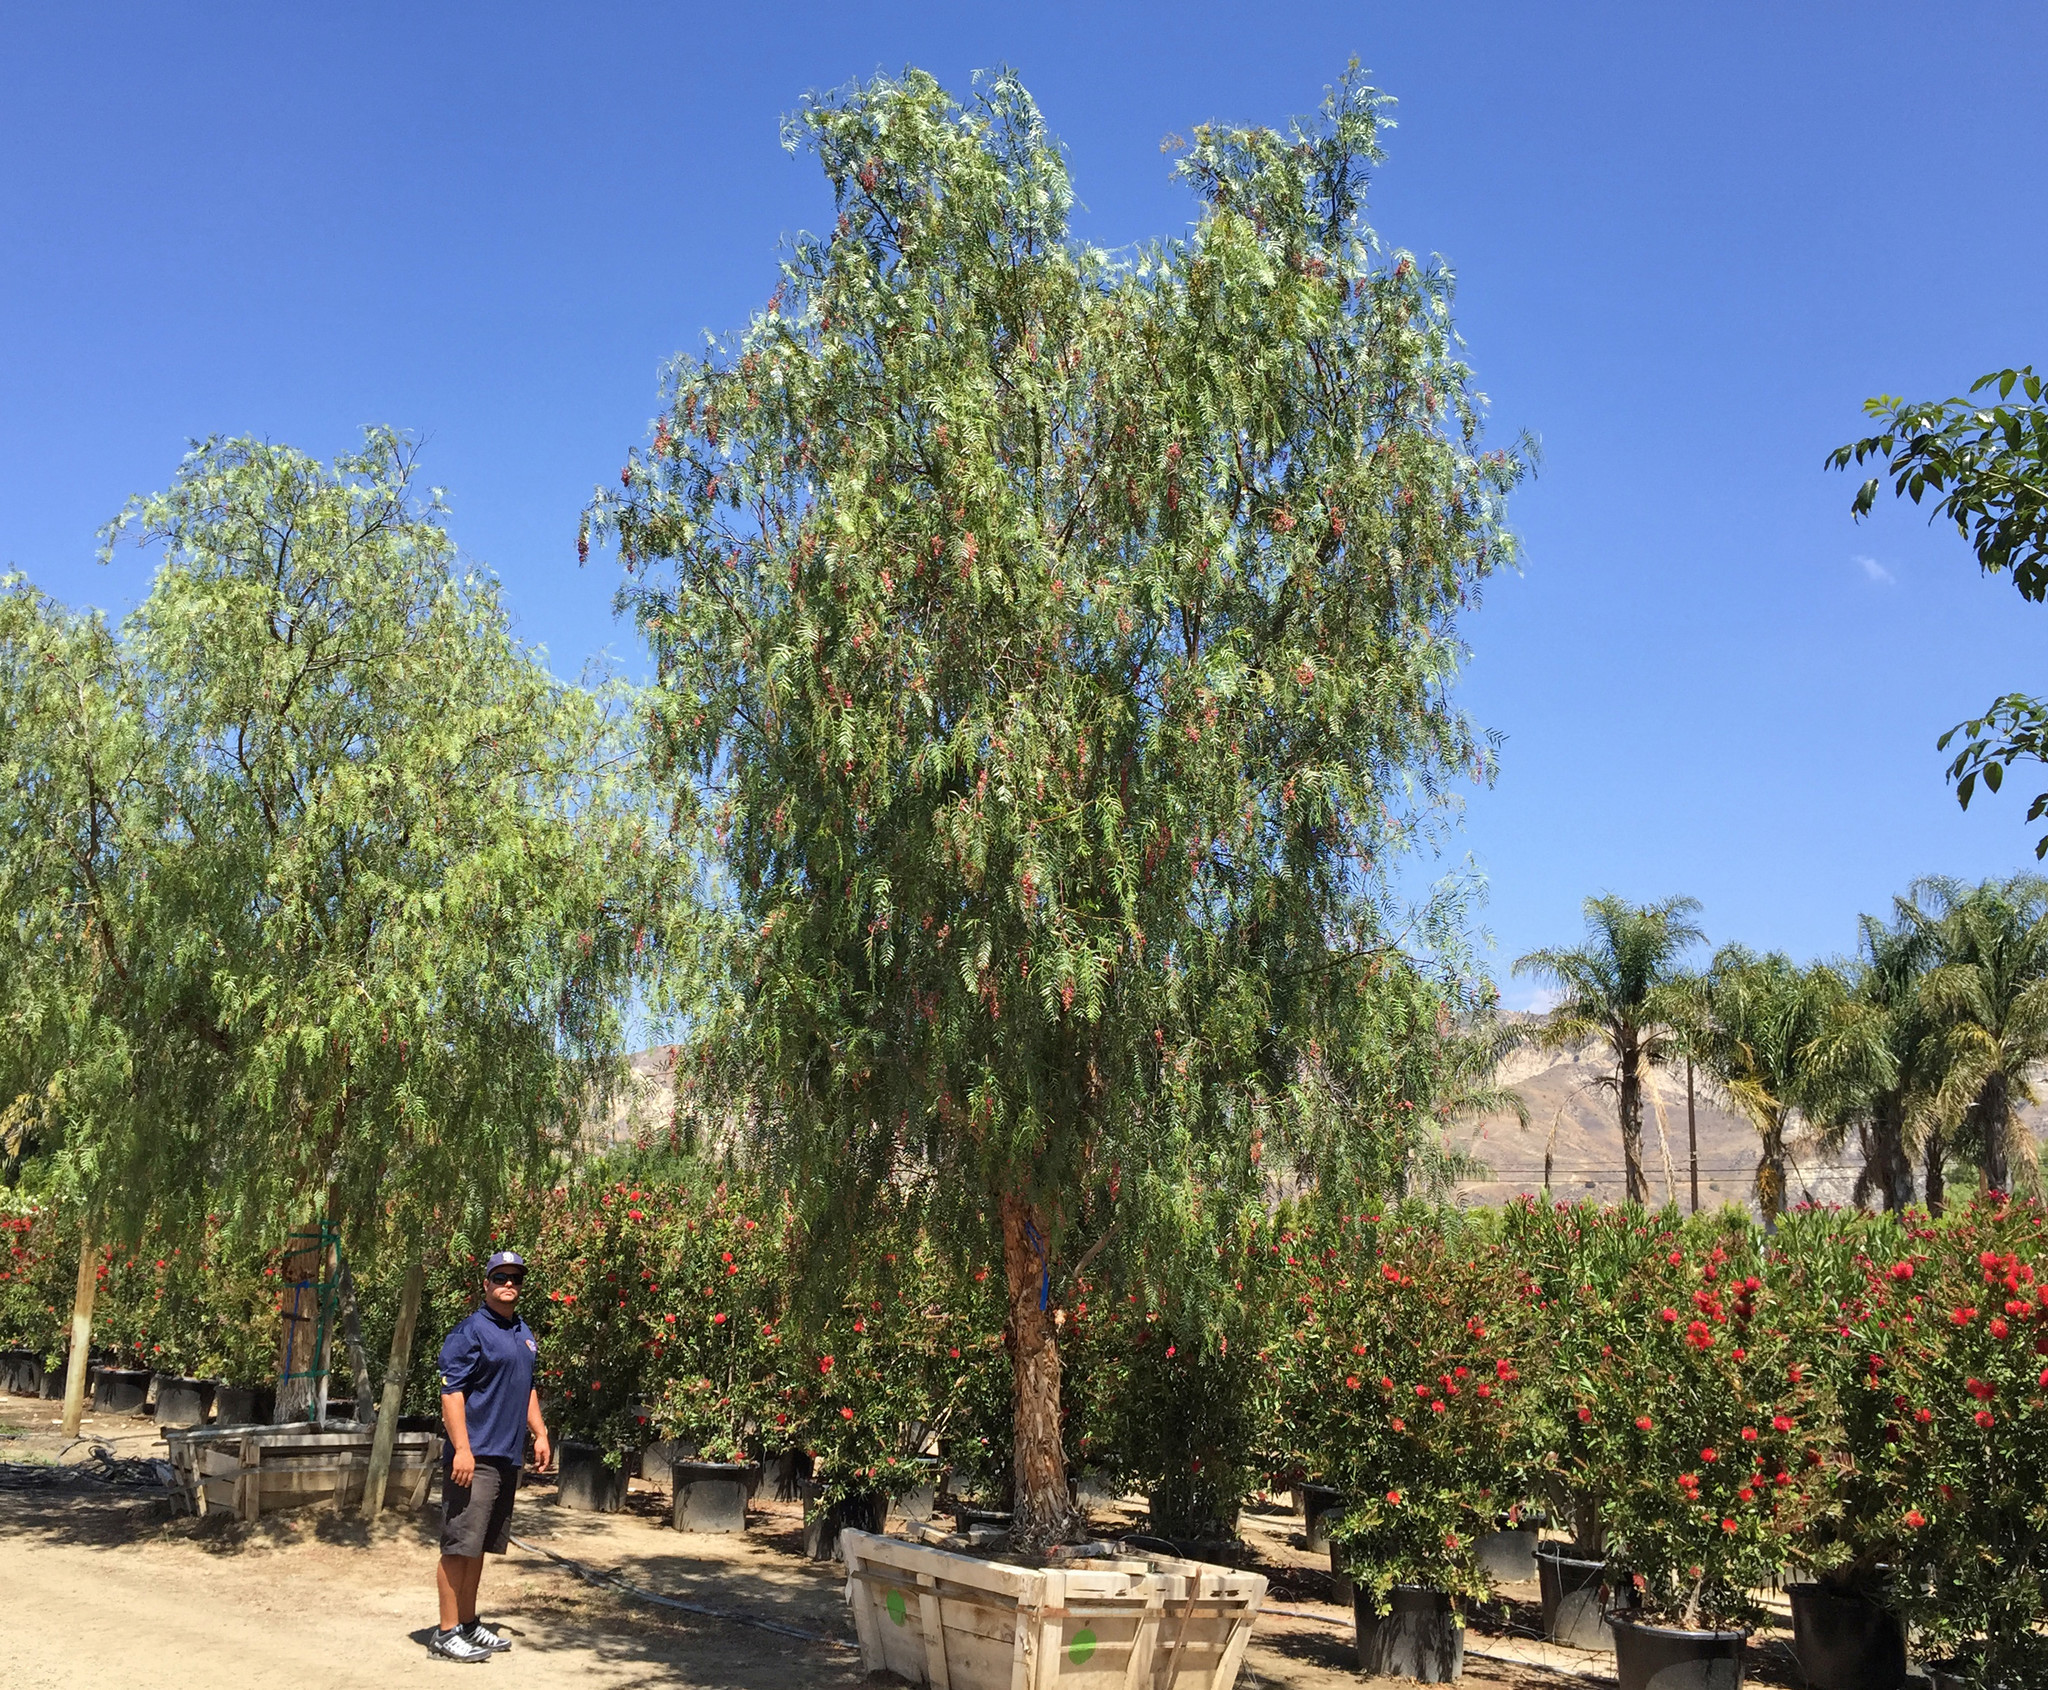 California Pepper Trees not only help create fire protection, once mature, they also provide sweeping shade to help cool down homes.